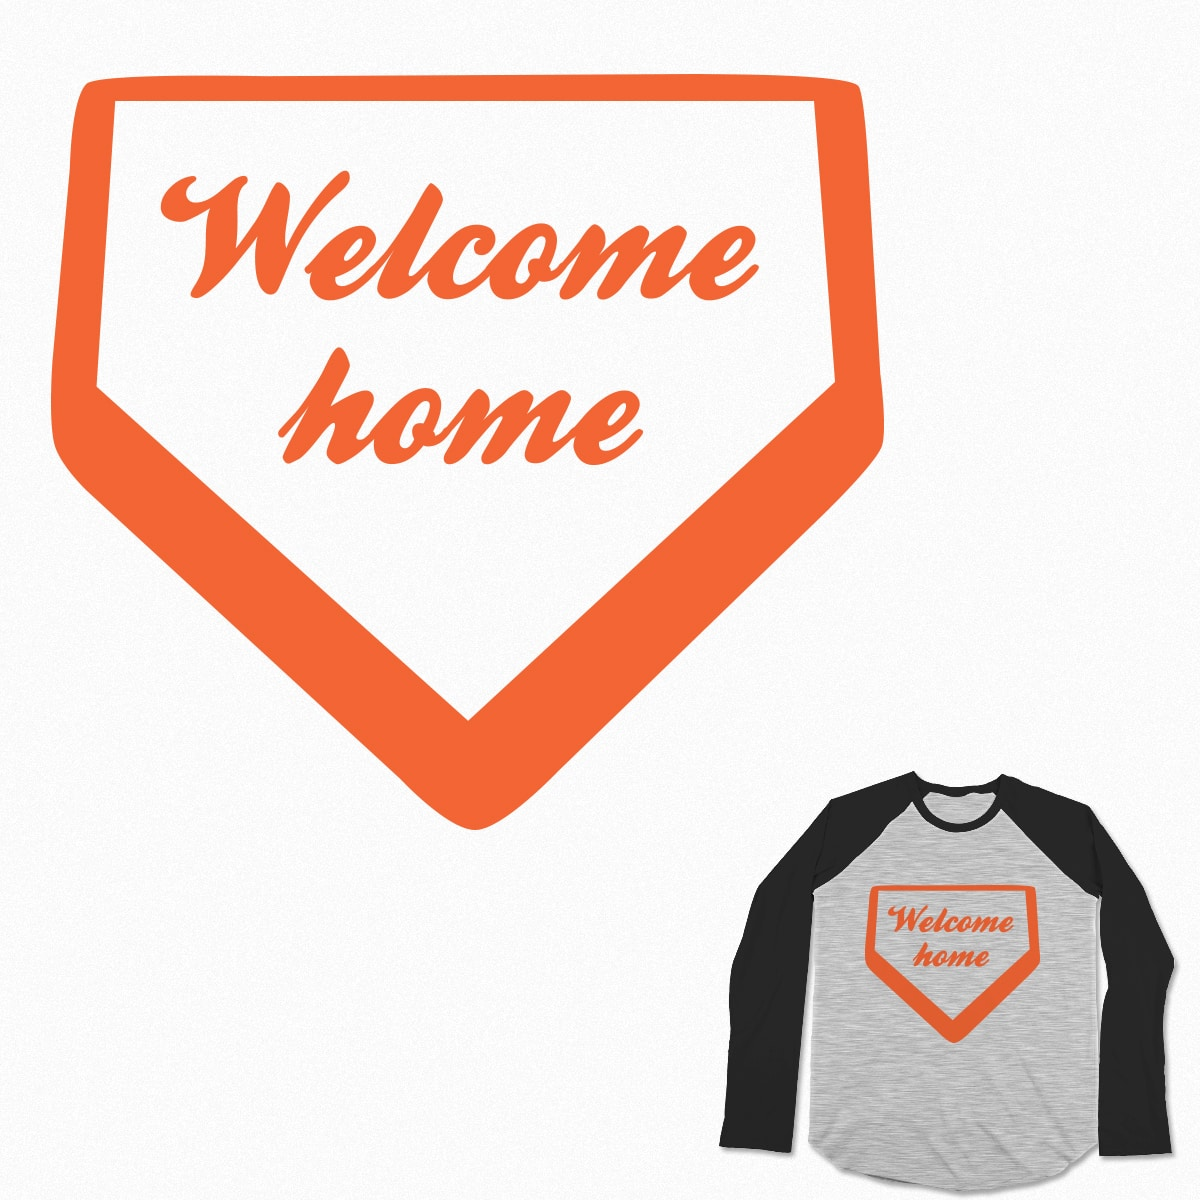 Home sweet home by mer.lara.7 on Threadless